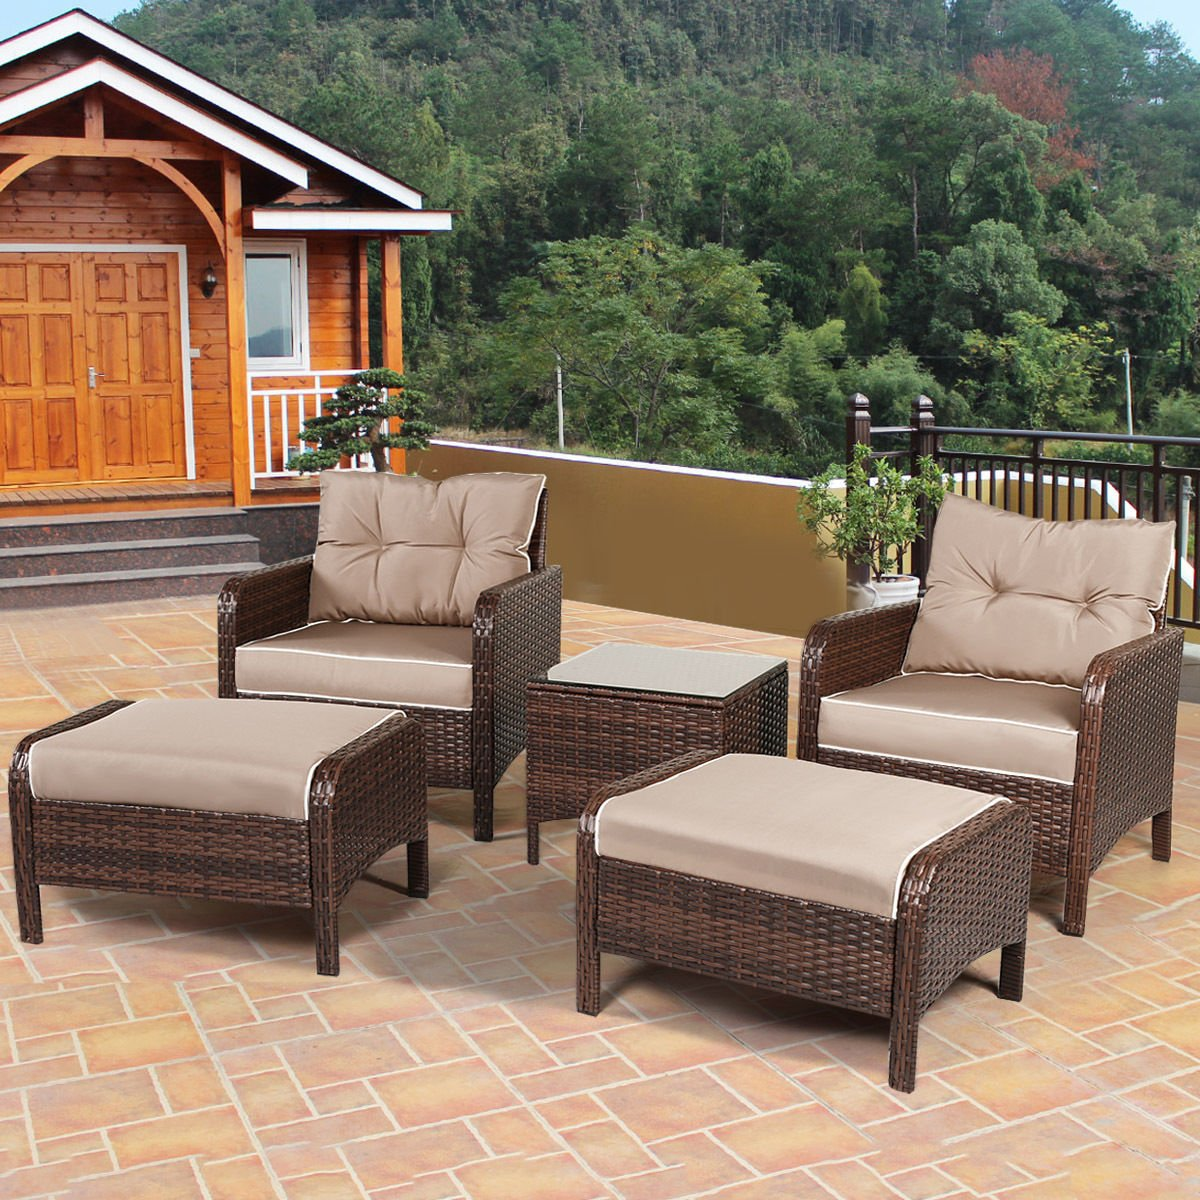 TANGKULA Wicker Furniture Set 5 Pieces PE Wicker Rattan Outdoor All Weather Cushioned Sofas and Ottoman Set L